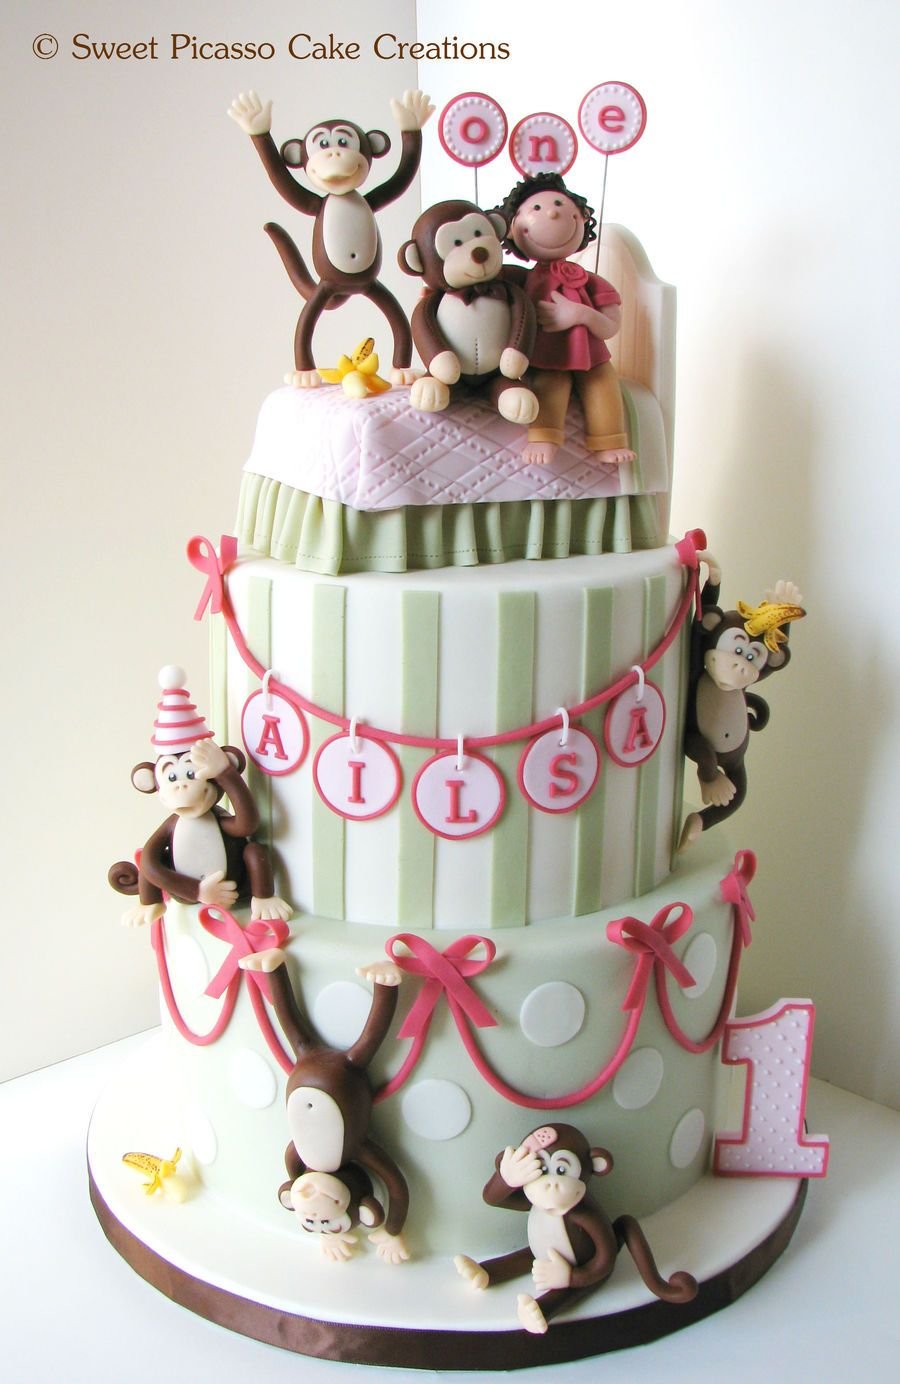 A cake for an adorable 1-year old whose favourite toy...